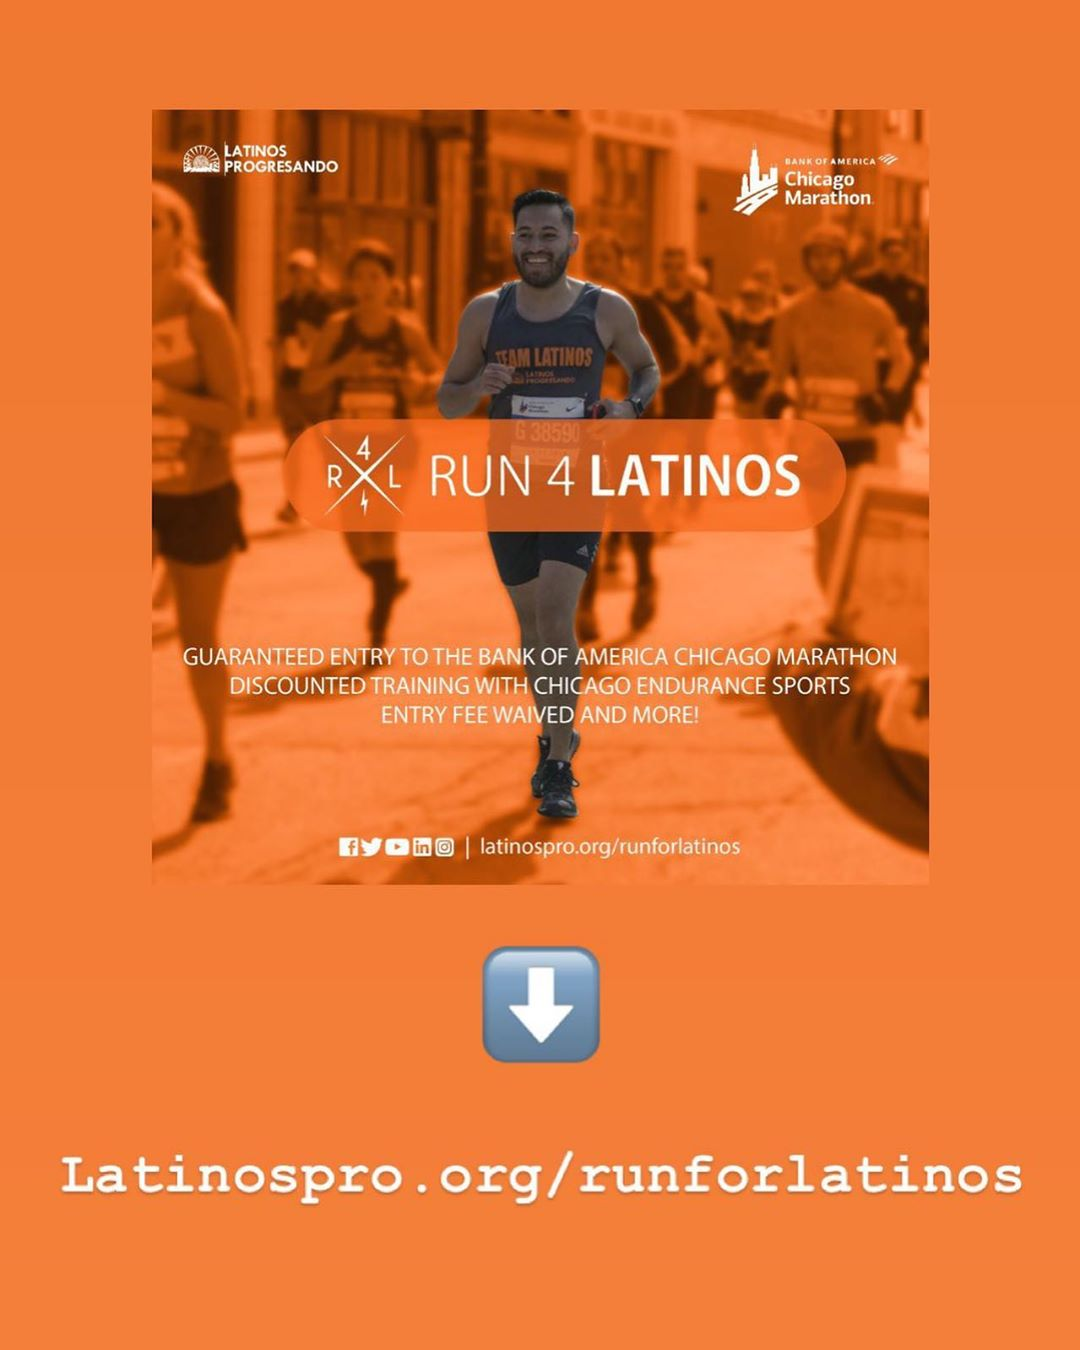 Today is the LAST DAY to apply and receive a guaranteed entry to the Bank of America Chicago Marathon before the fundraising commitment increases by $500. Don't miss your chance join #TeamLatinos now: latinospro.org/runforlatinos